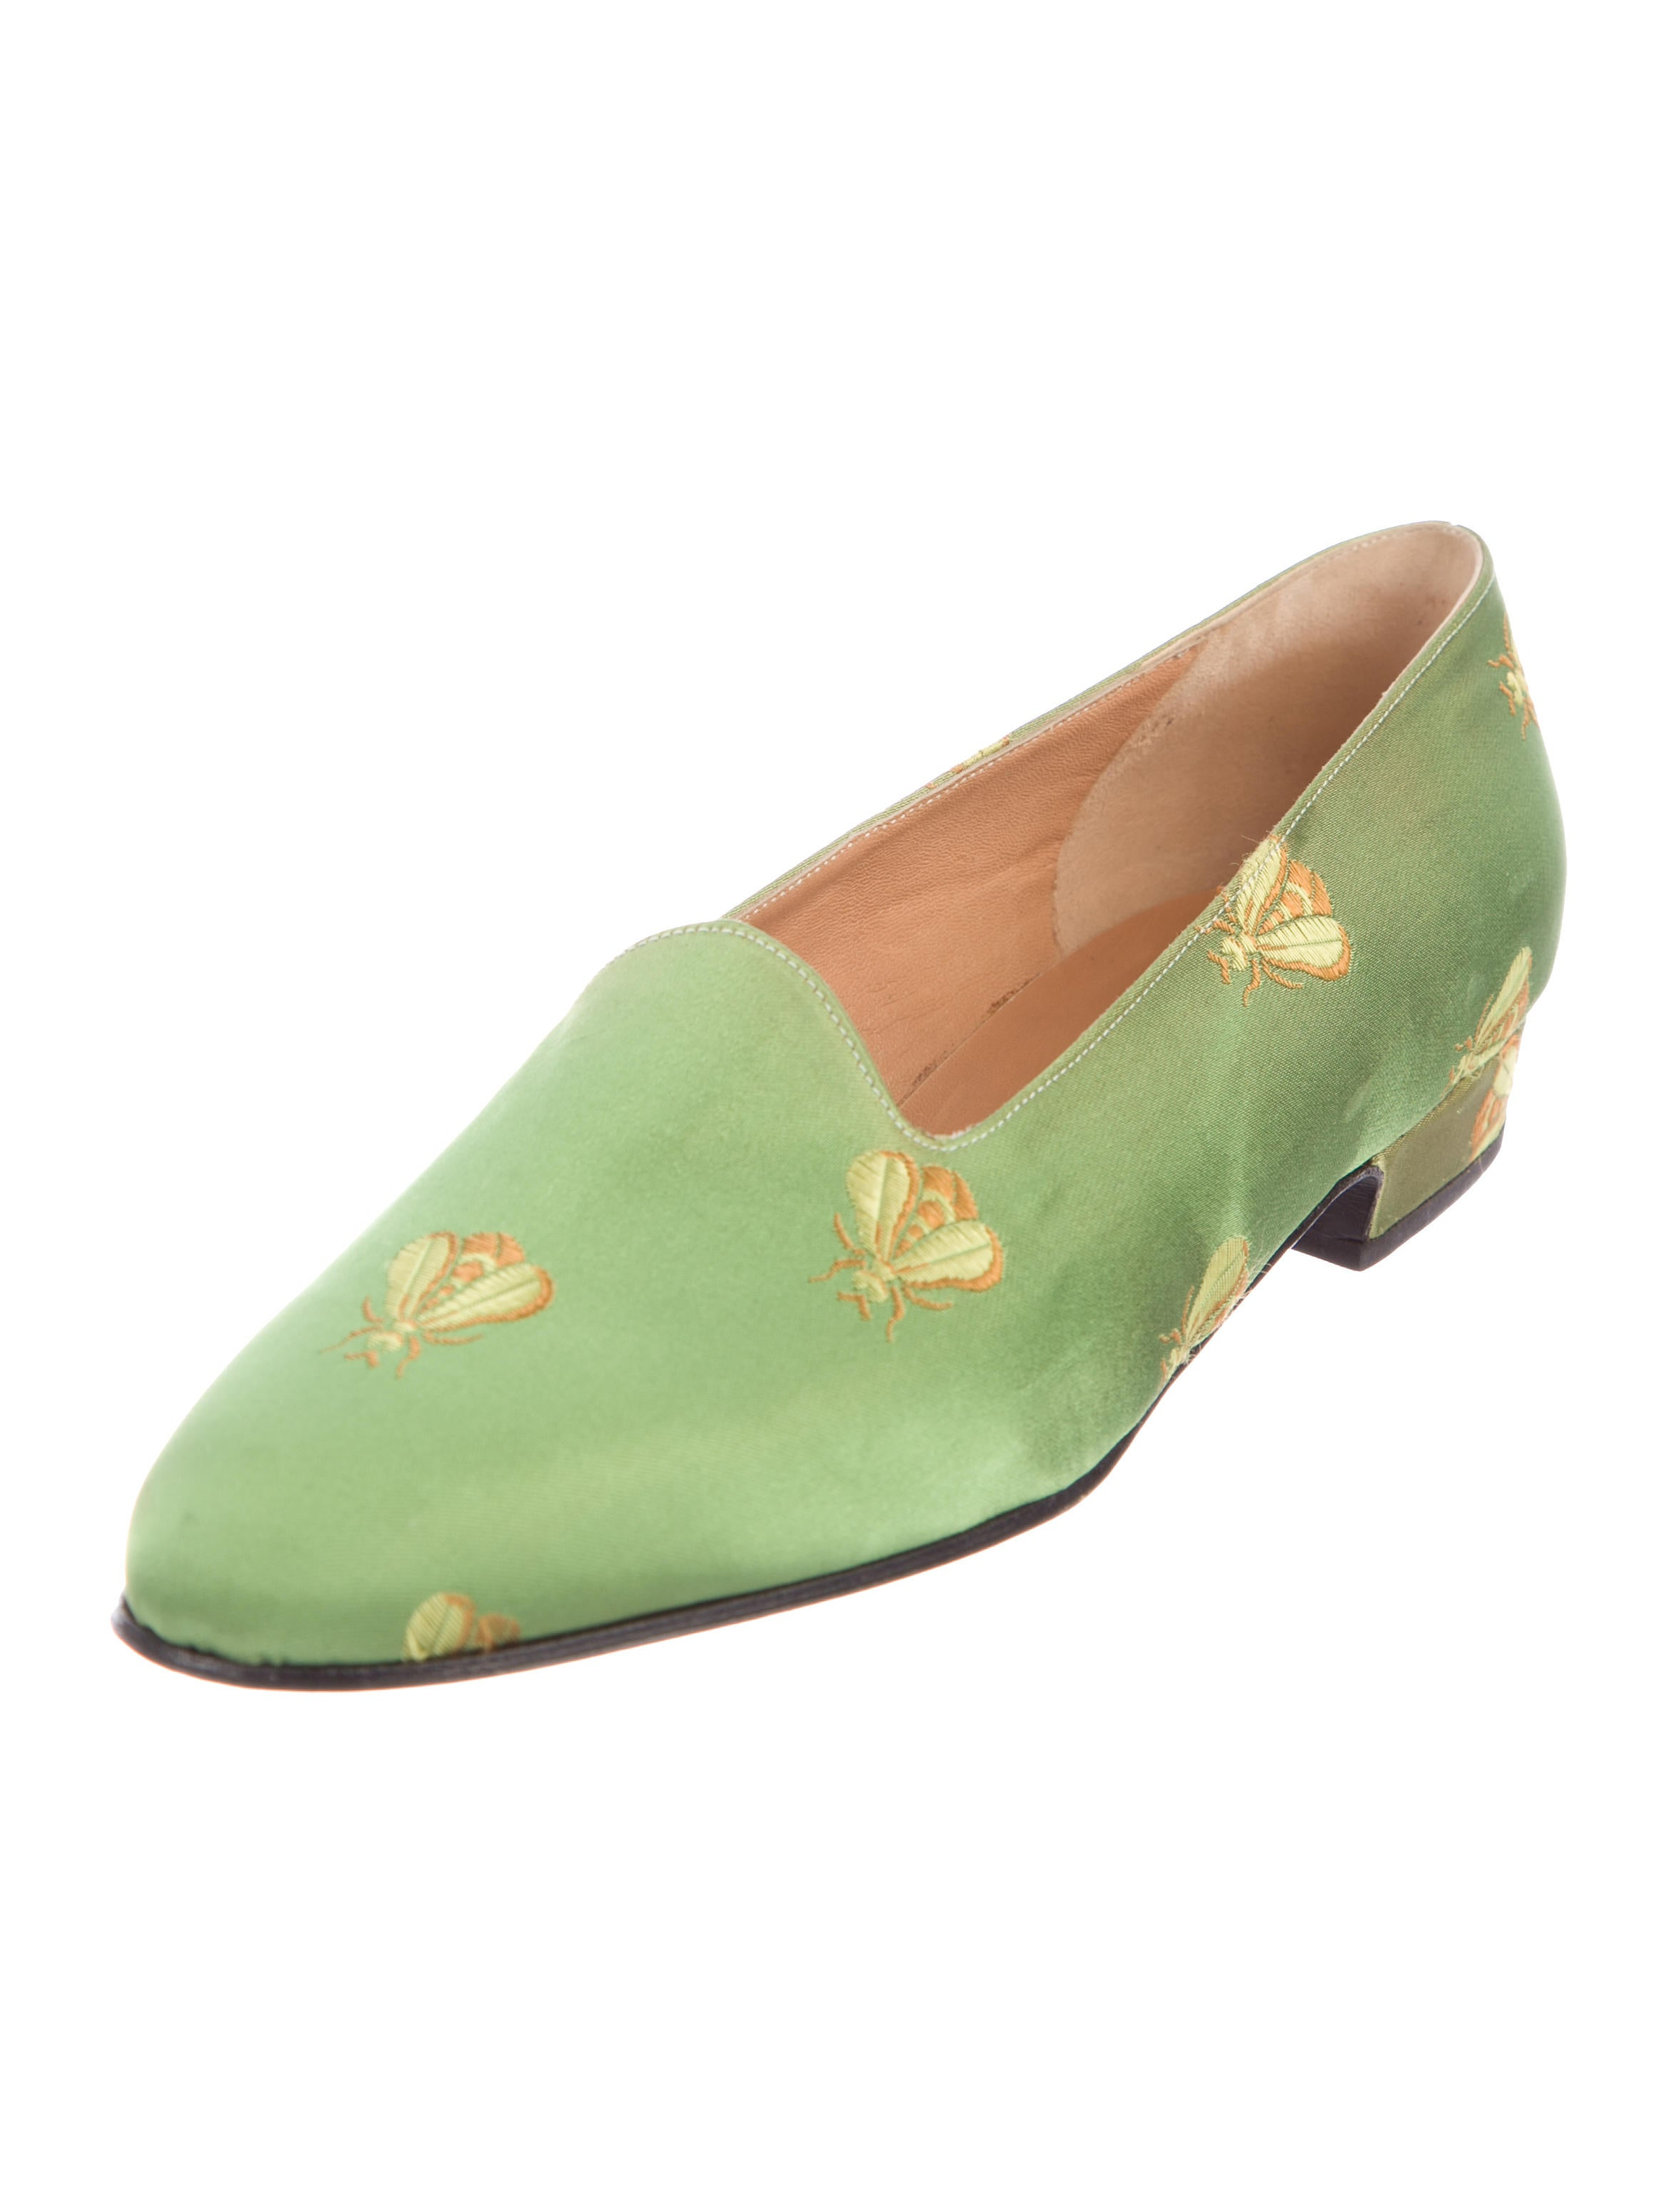 Delage Satin Embroidered Flats 2014 cheap price YGbFhKh